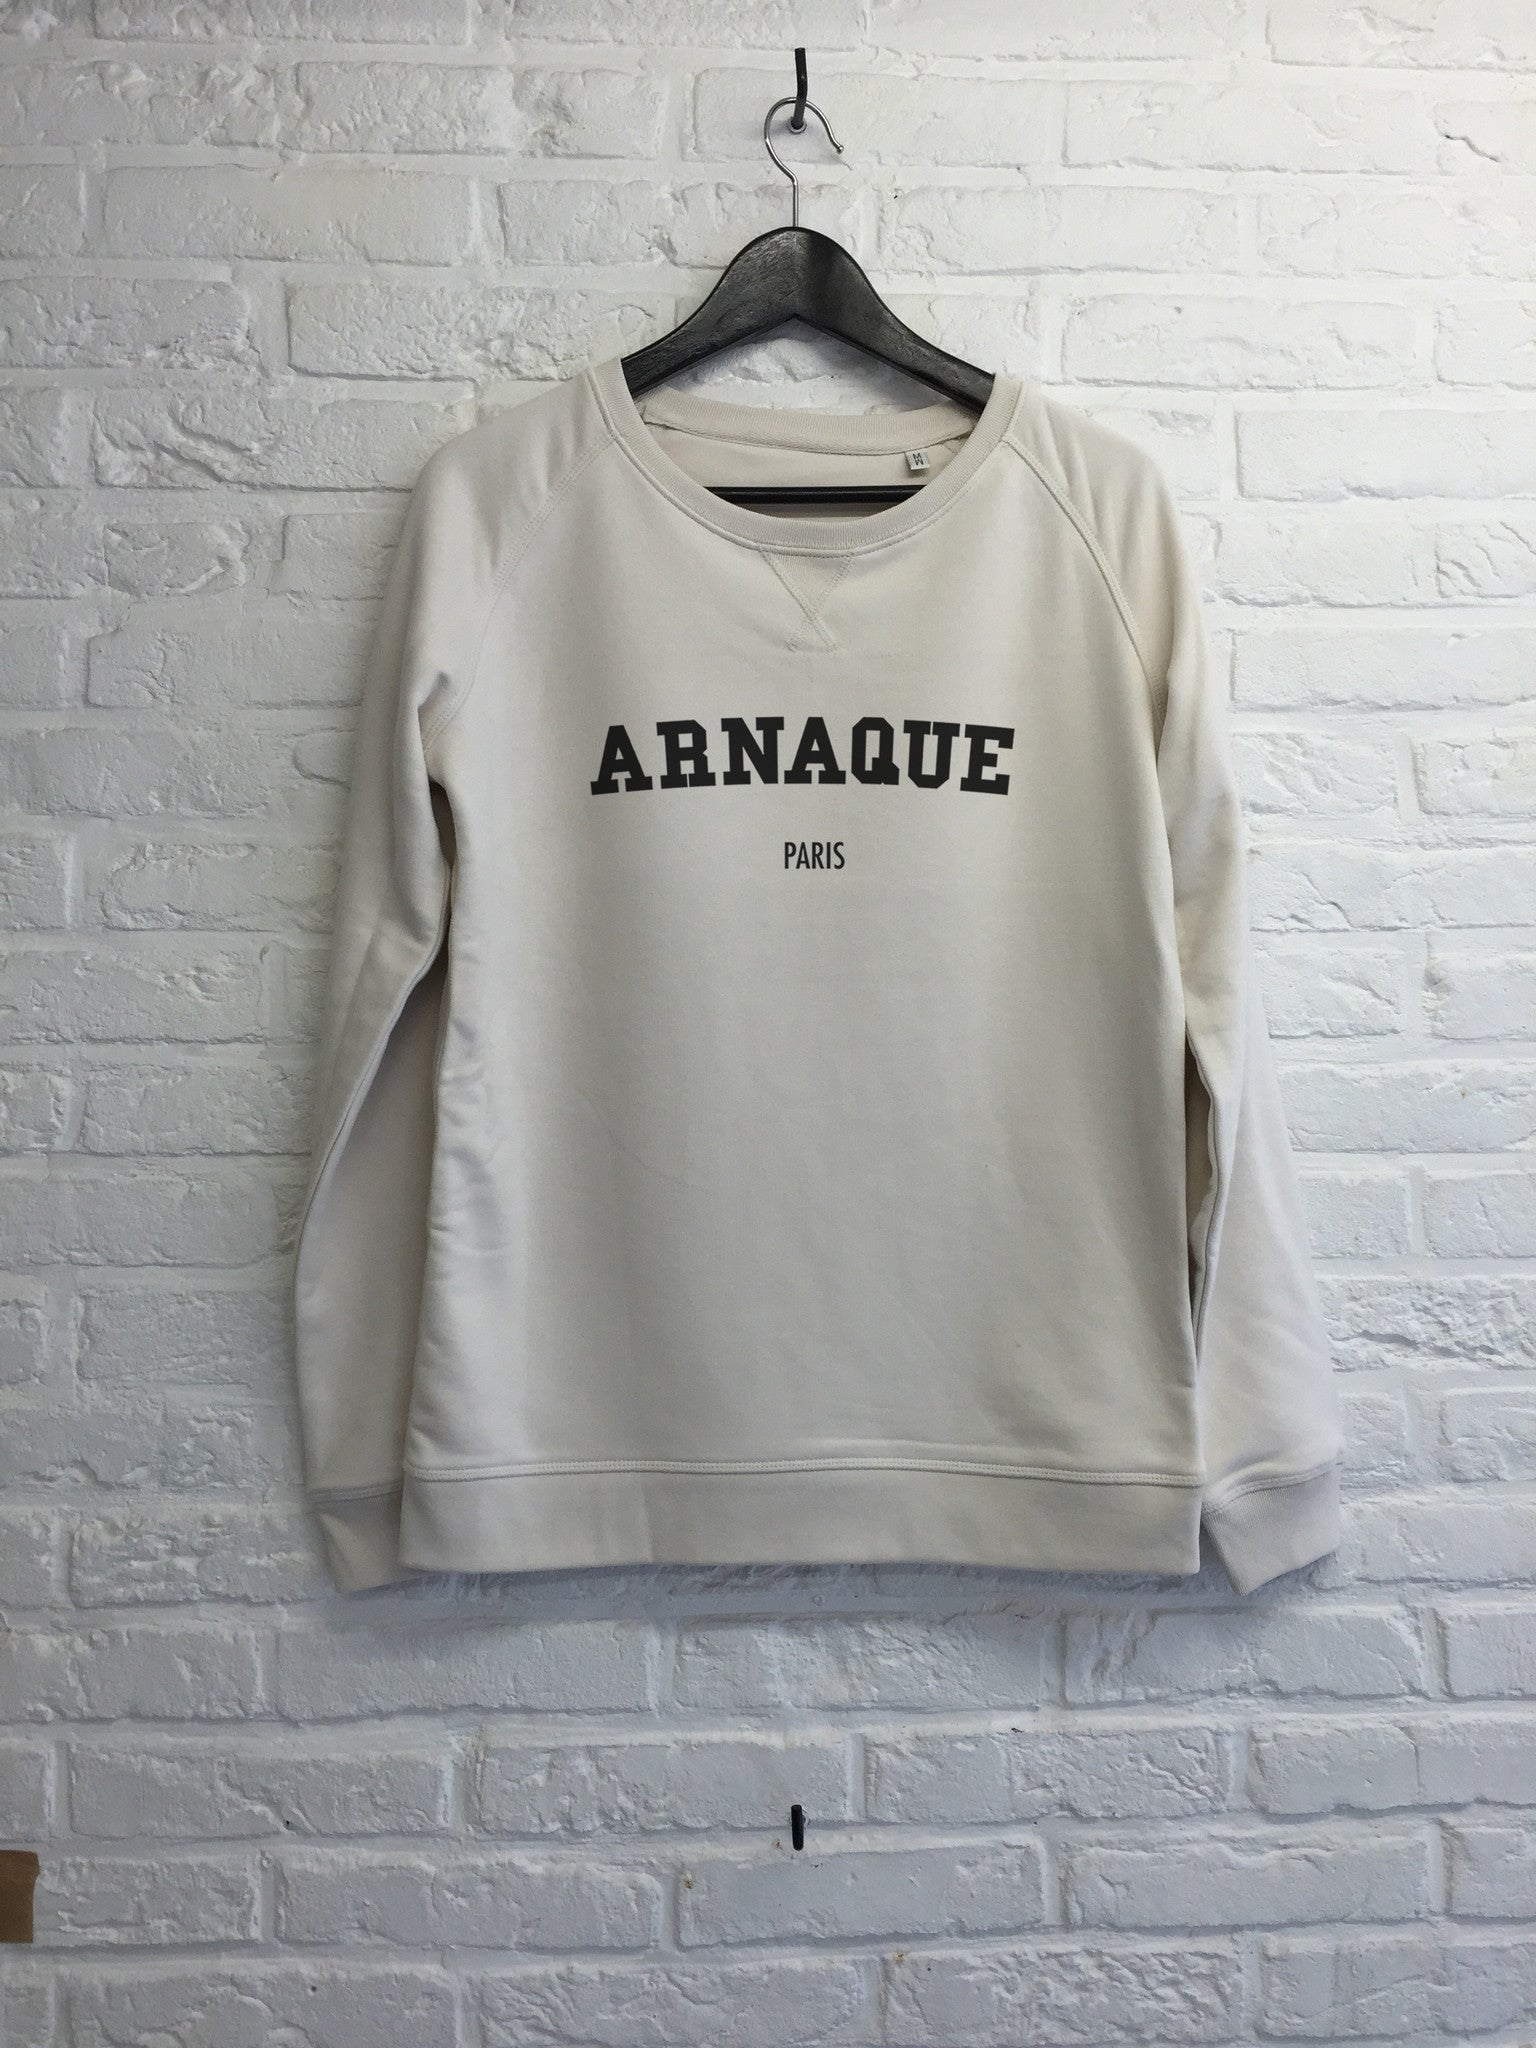 Arnaque Paris - Sweat - Femme-Sweat shirts-Atelier Amelot